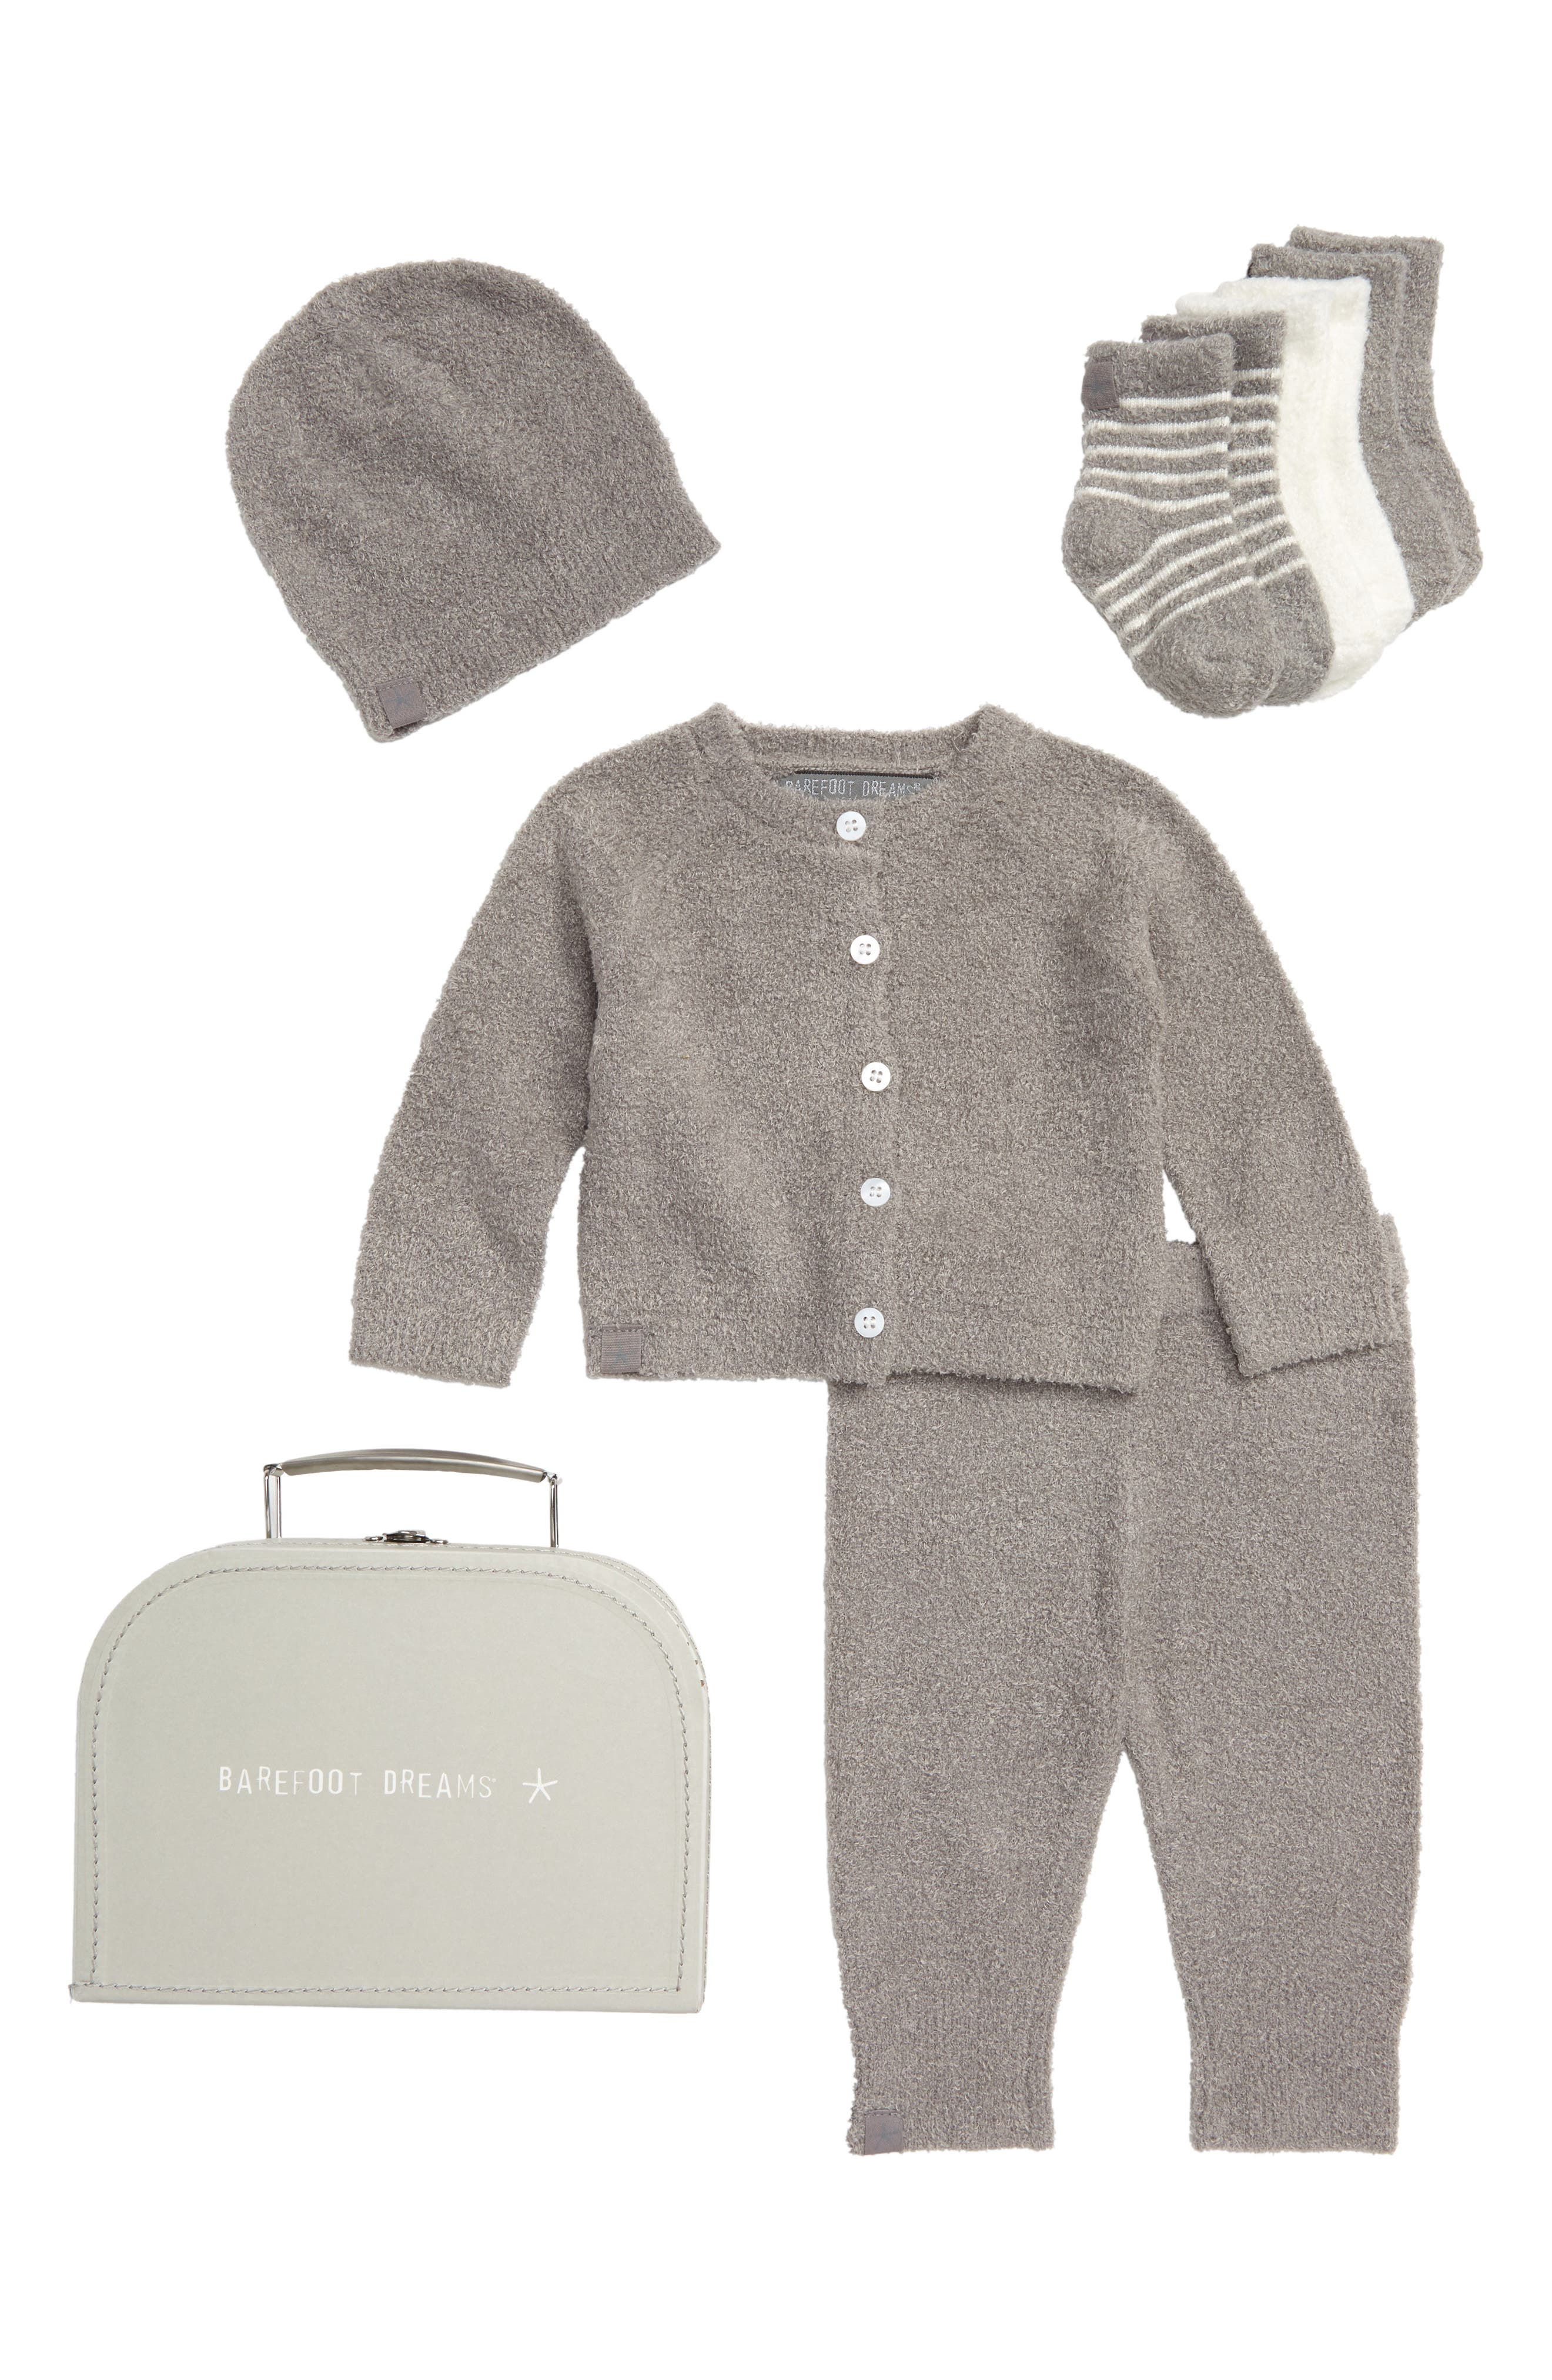 CozyChic<sup>®</sup> Lite Classic Cardigan, Pants, Socks, Beanie & Suitcase Set,                         Main,                         color, PEWTER